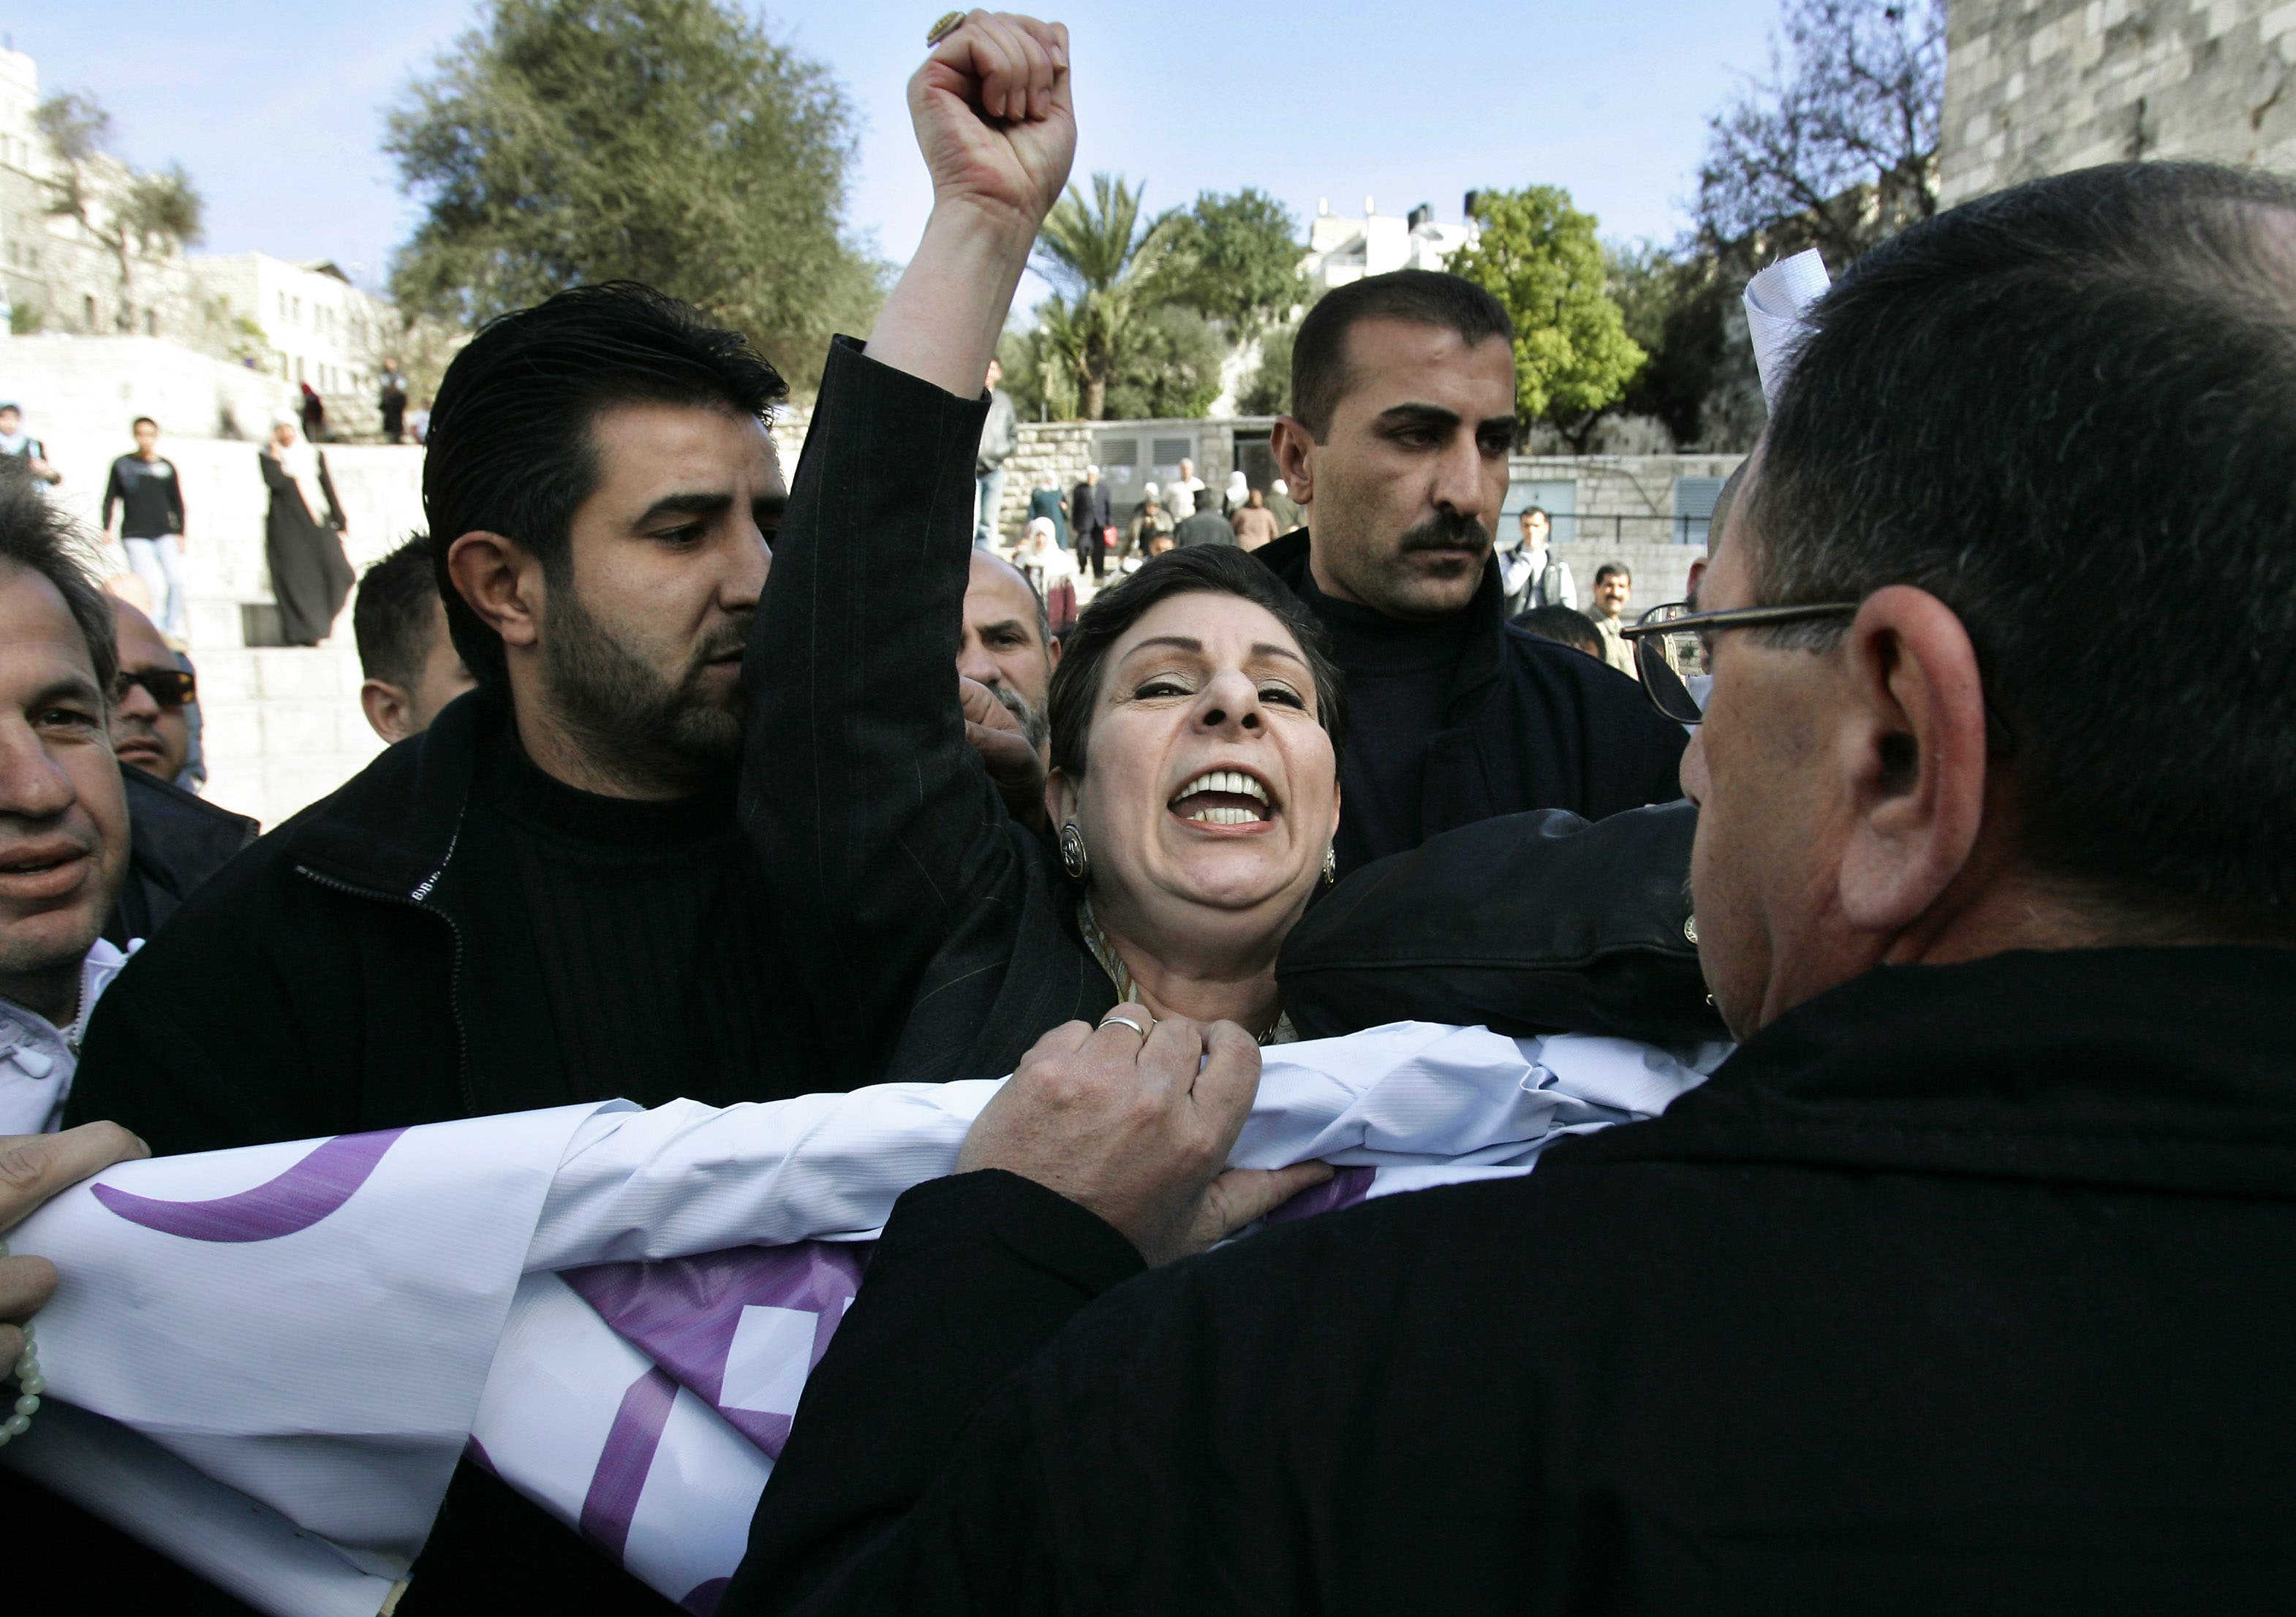 Palestinian parliamentary election candidate Hanan Ashrawi, center, from the Third Way party shouts as she and supporters scuffle with Israeli police officers, right, as they take her election banner from her during a campaign stop in front of Damascus Gate in Jerusalem's Old City, Tuesday, Jan. 3, 2006. (AP)